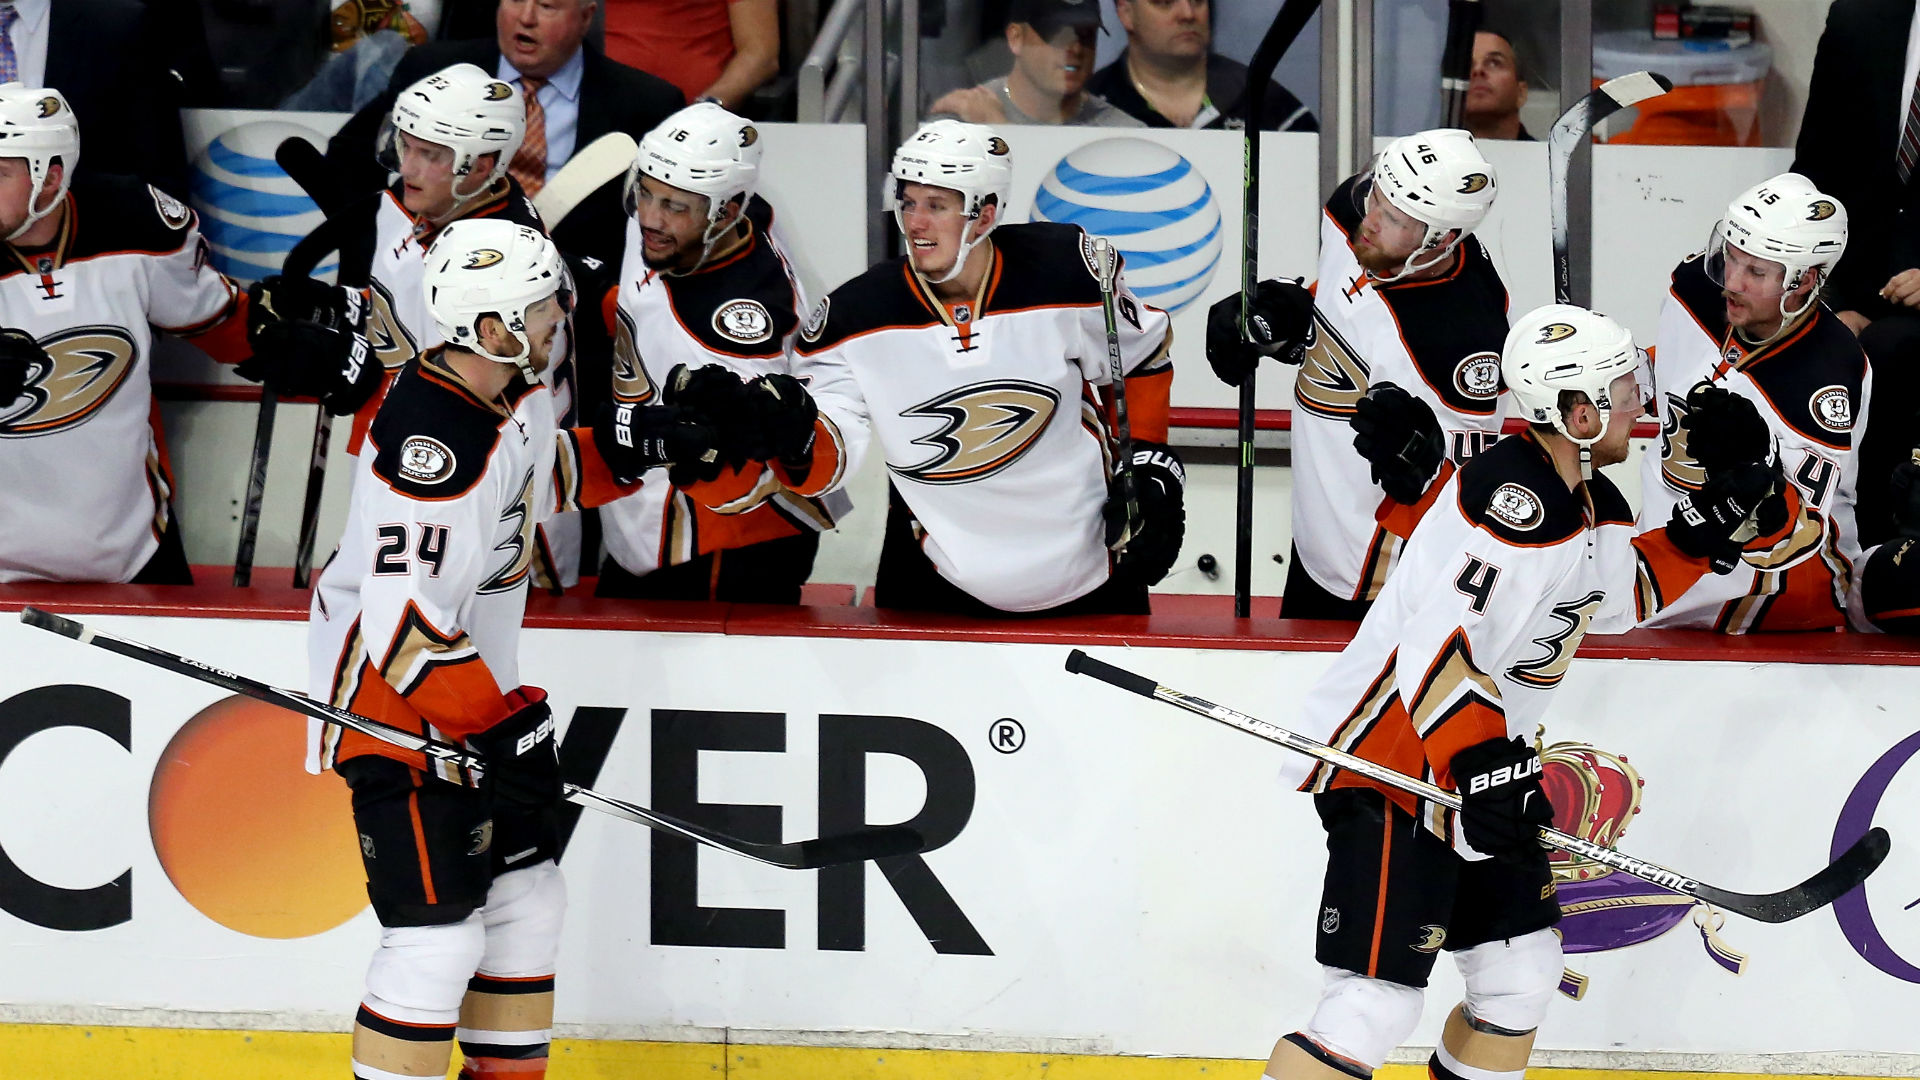 Western Conference finals: Simon Despres, Ducks lock down 'Hawks in Game 3 win